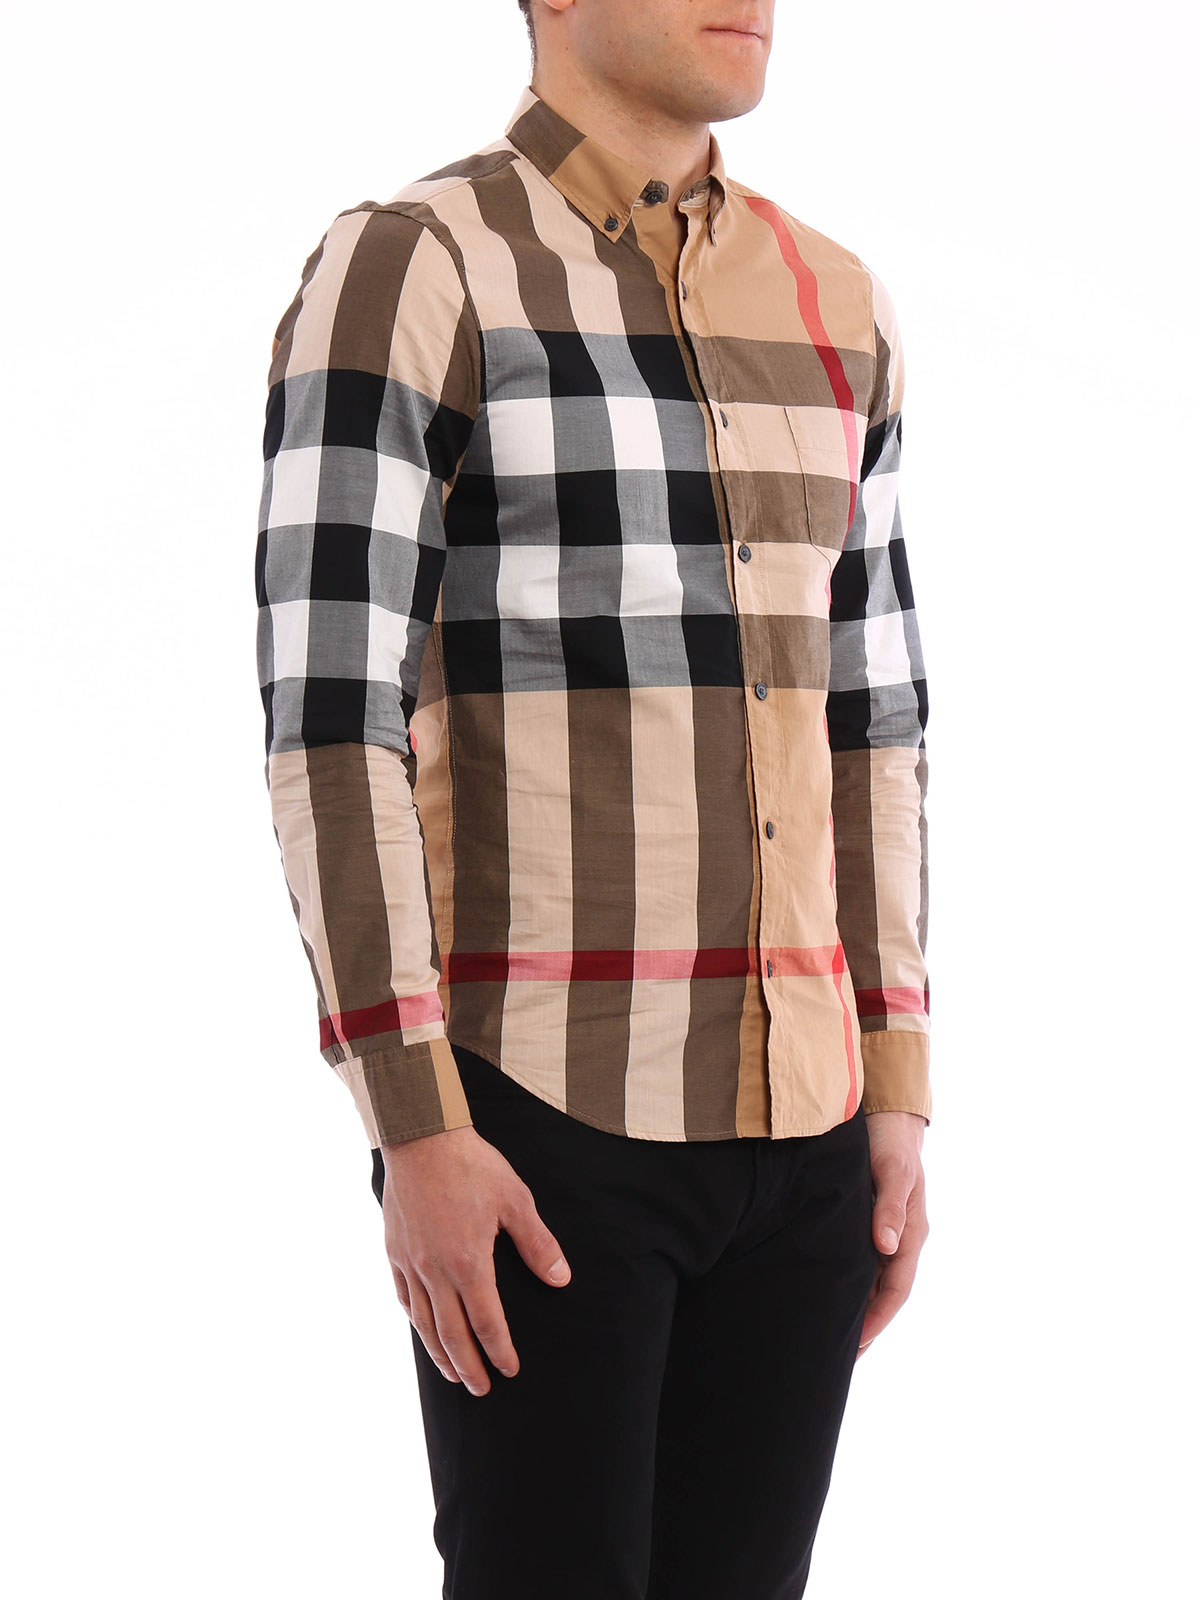 Burberry - Chemise Fred Pour Homme - Chemises - 40083851   iKRIX.com 2aeb28a4f74